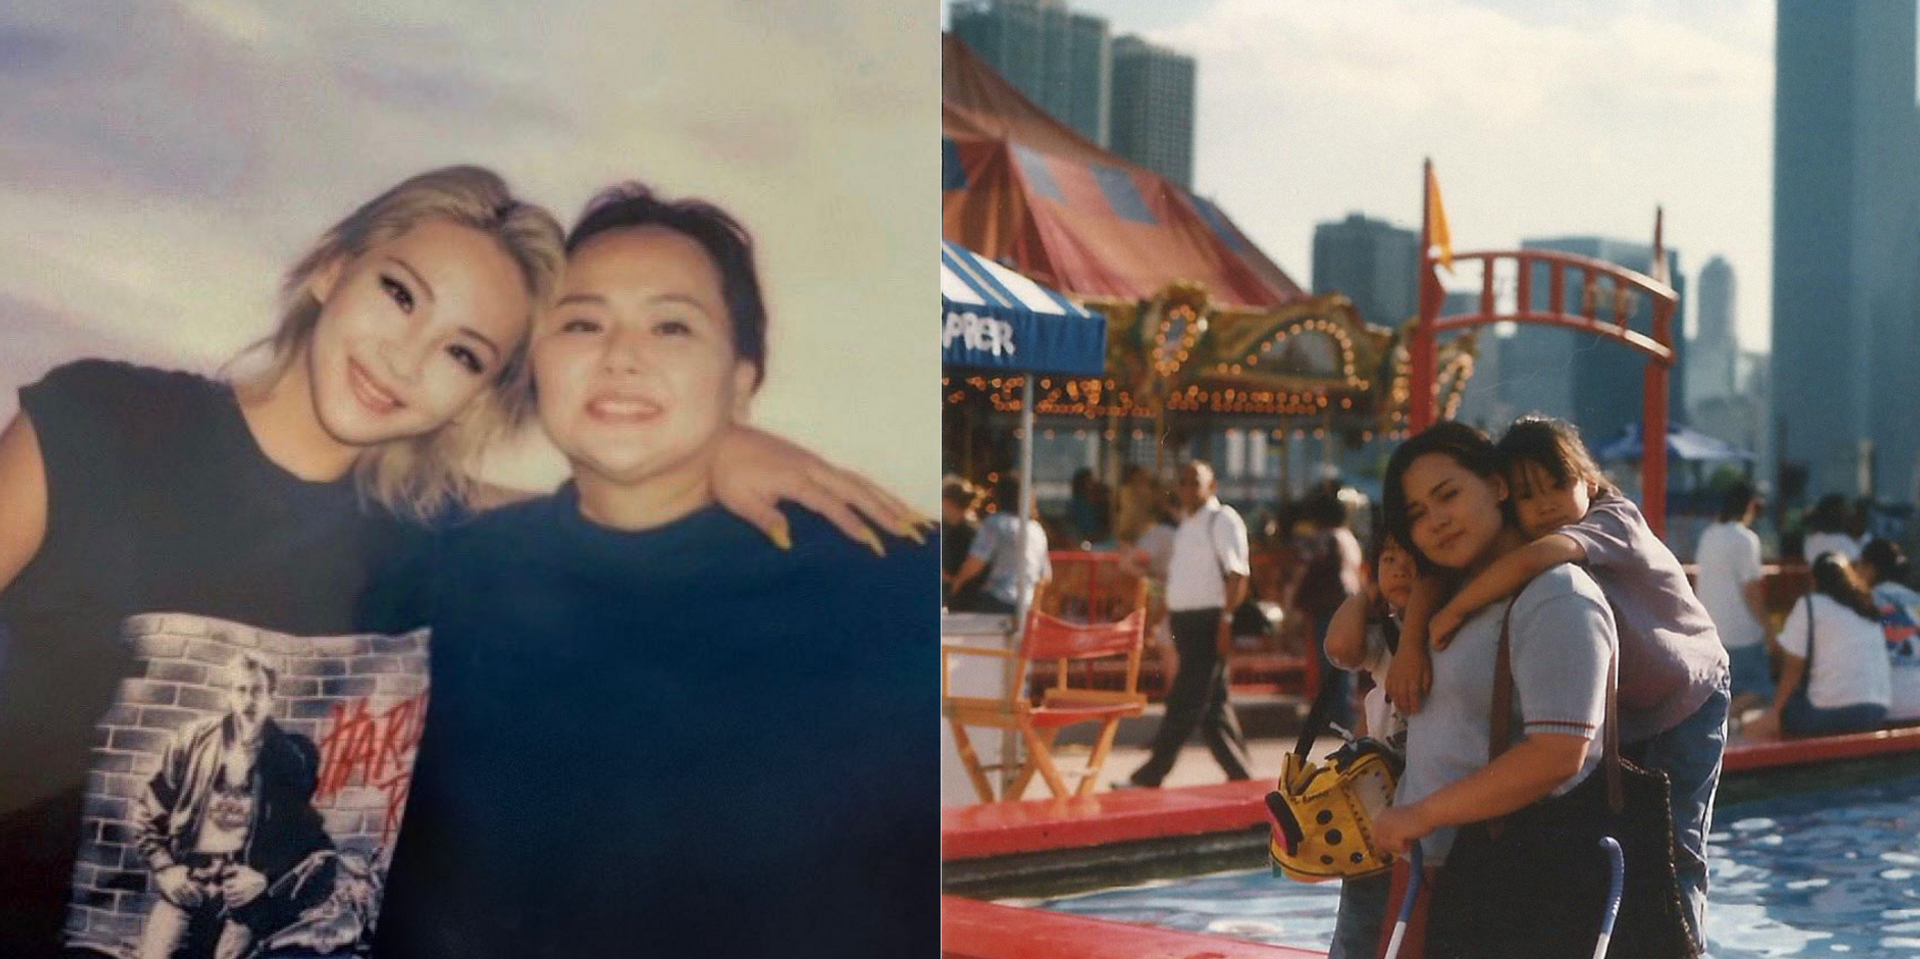 """""""If you love someone, tell them now."""" CL dedicates new single 'Wish You Were Here' to her late mother - listen"""